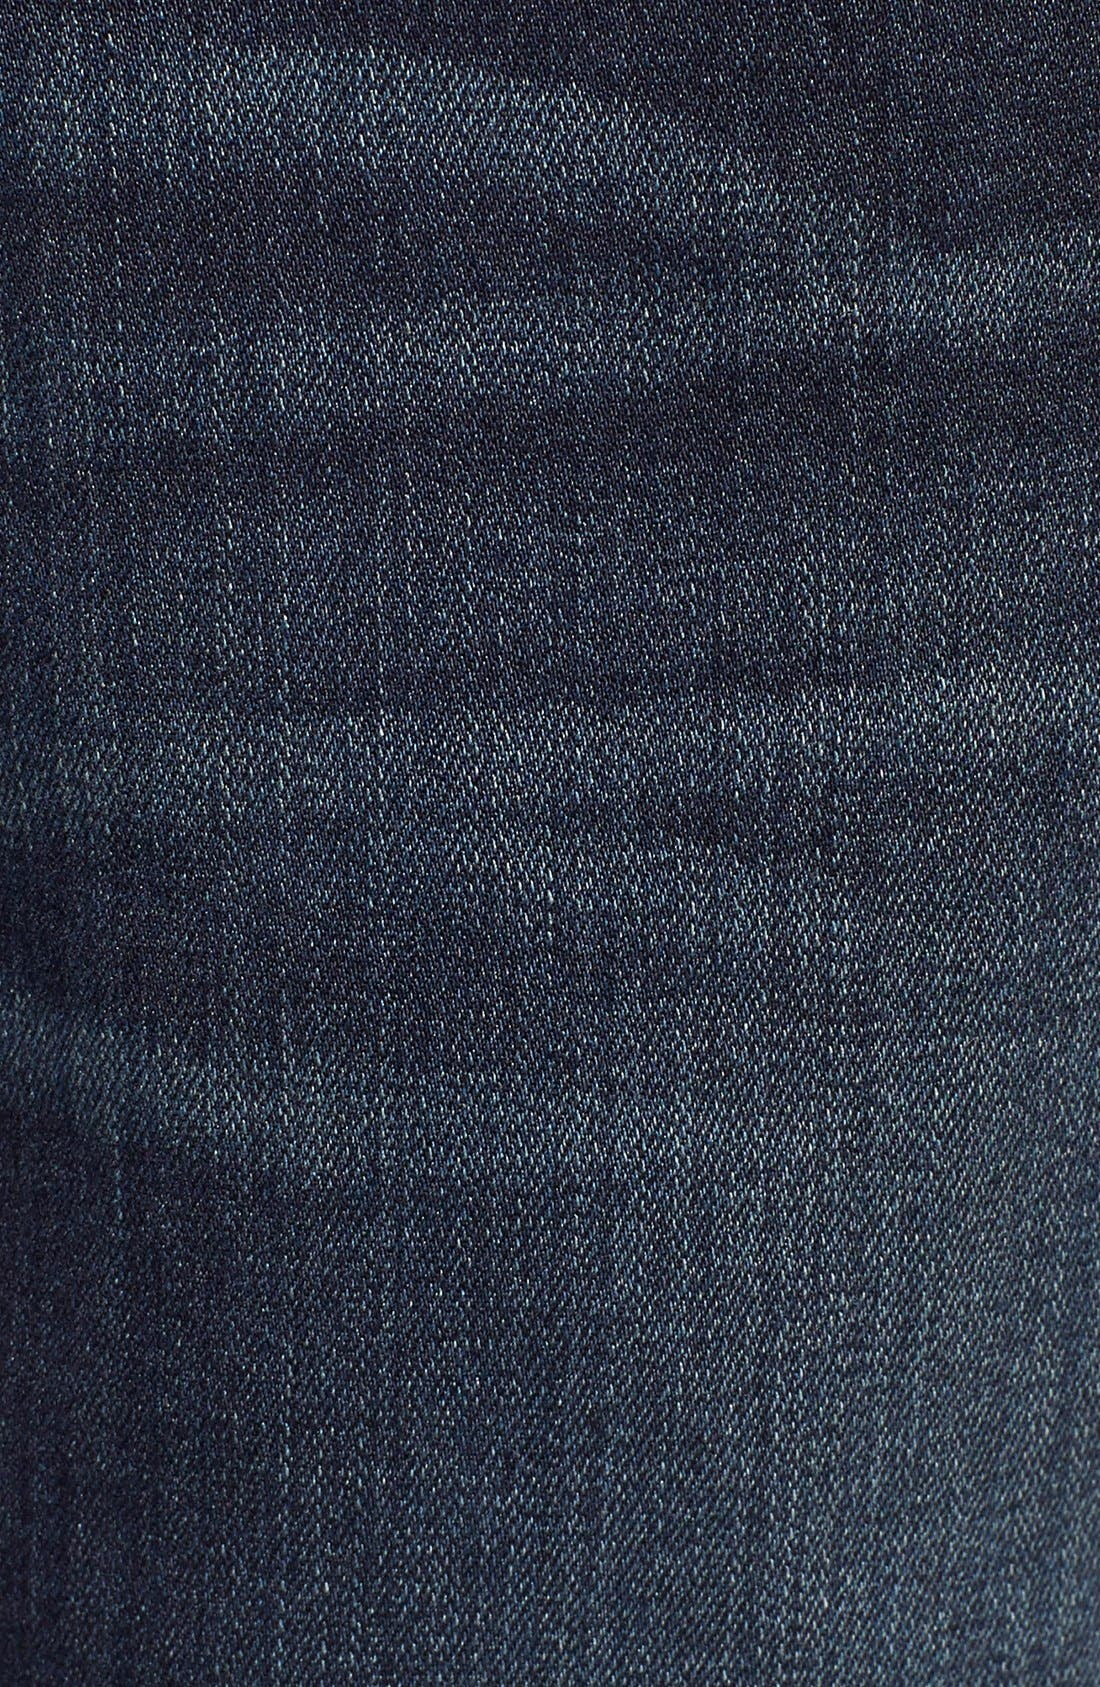 Lennox Slim Fit Jeans,                             Alternate thumbnail 6, color,                             Rigby